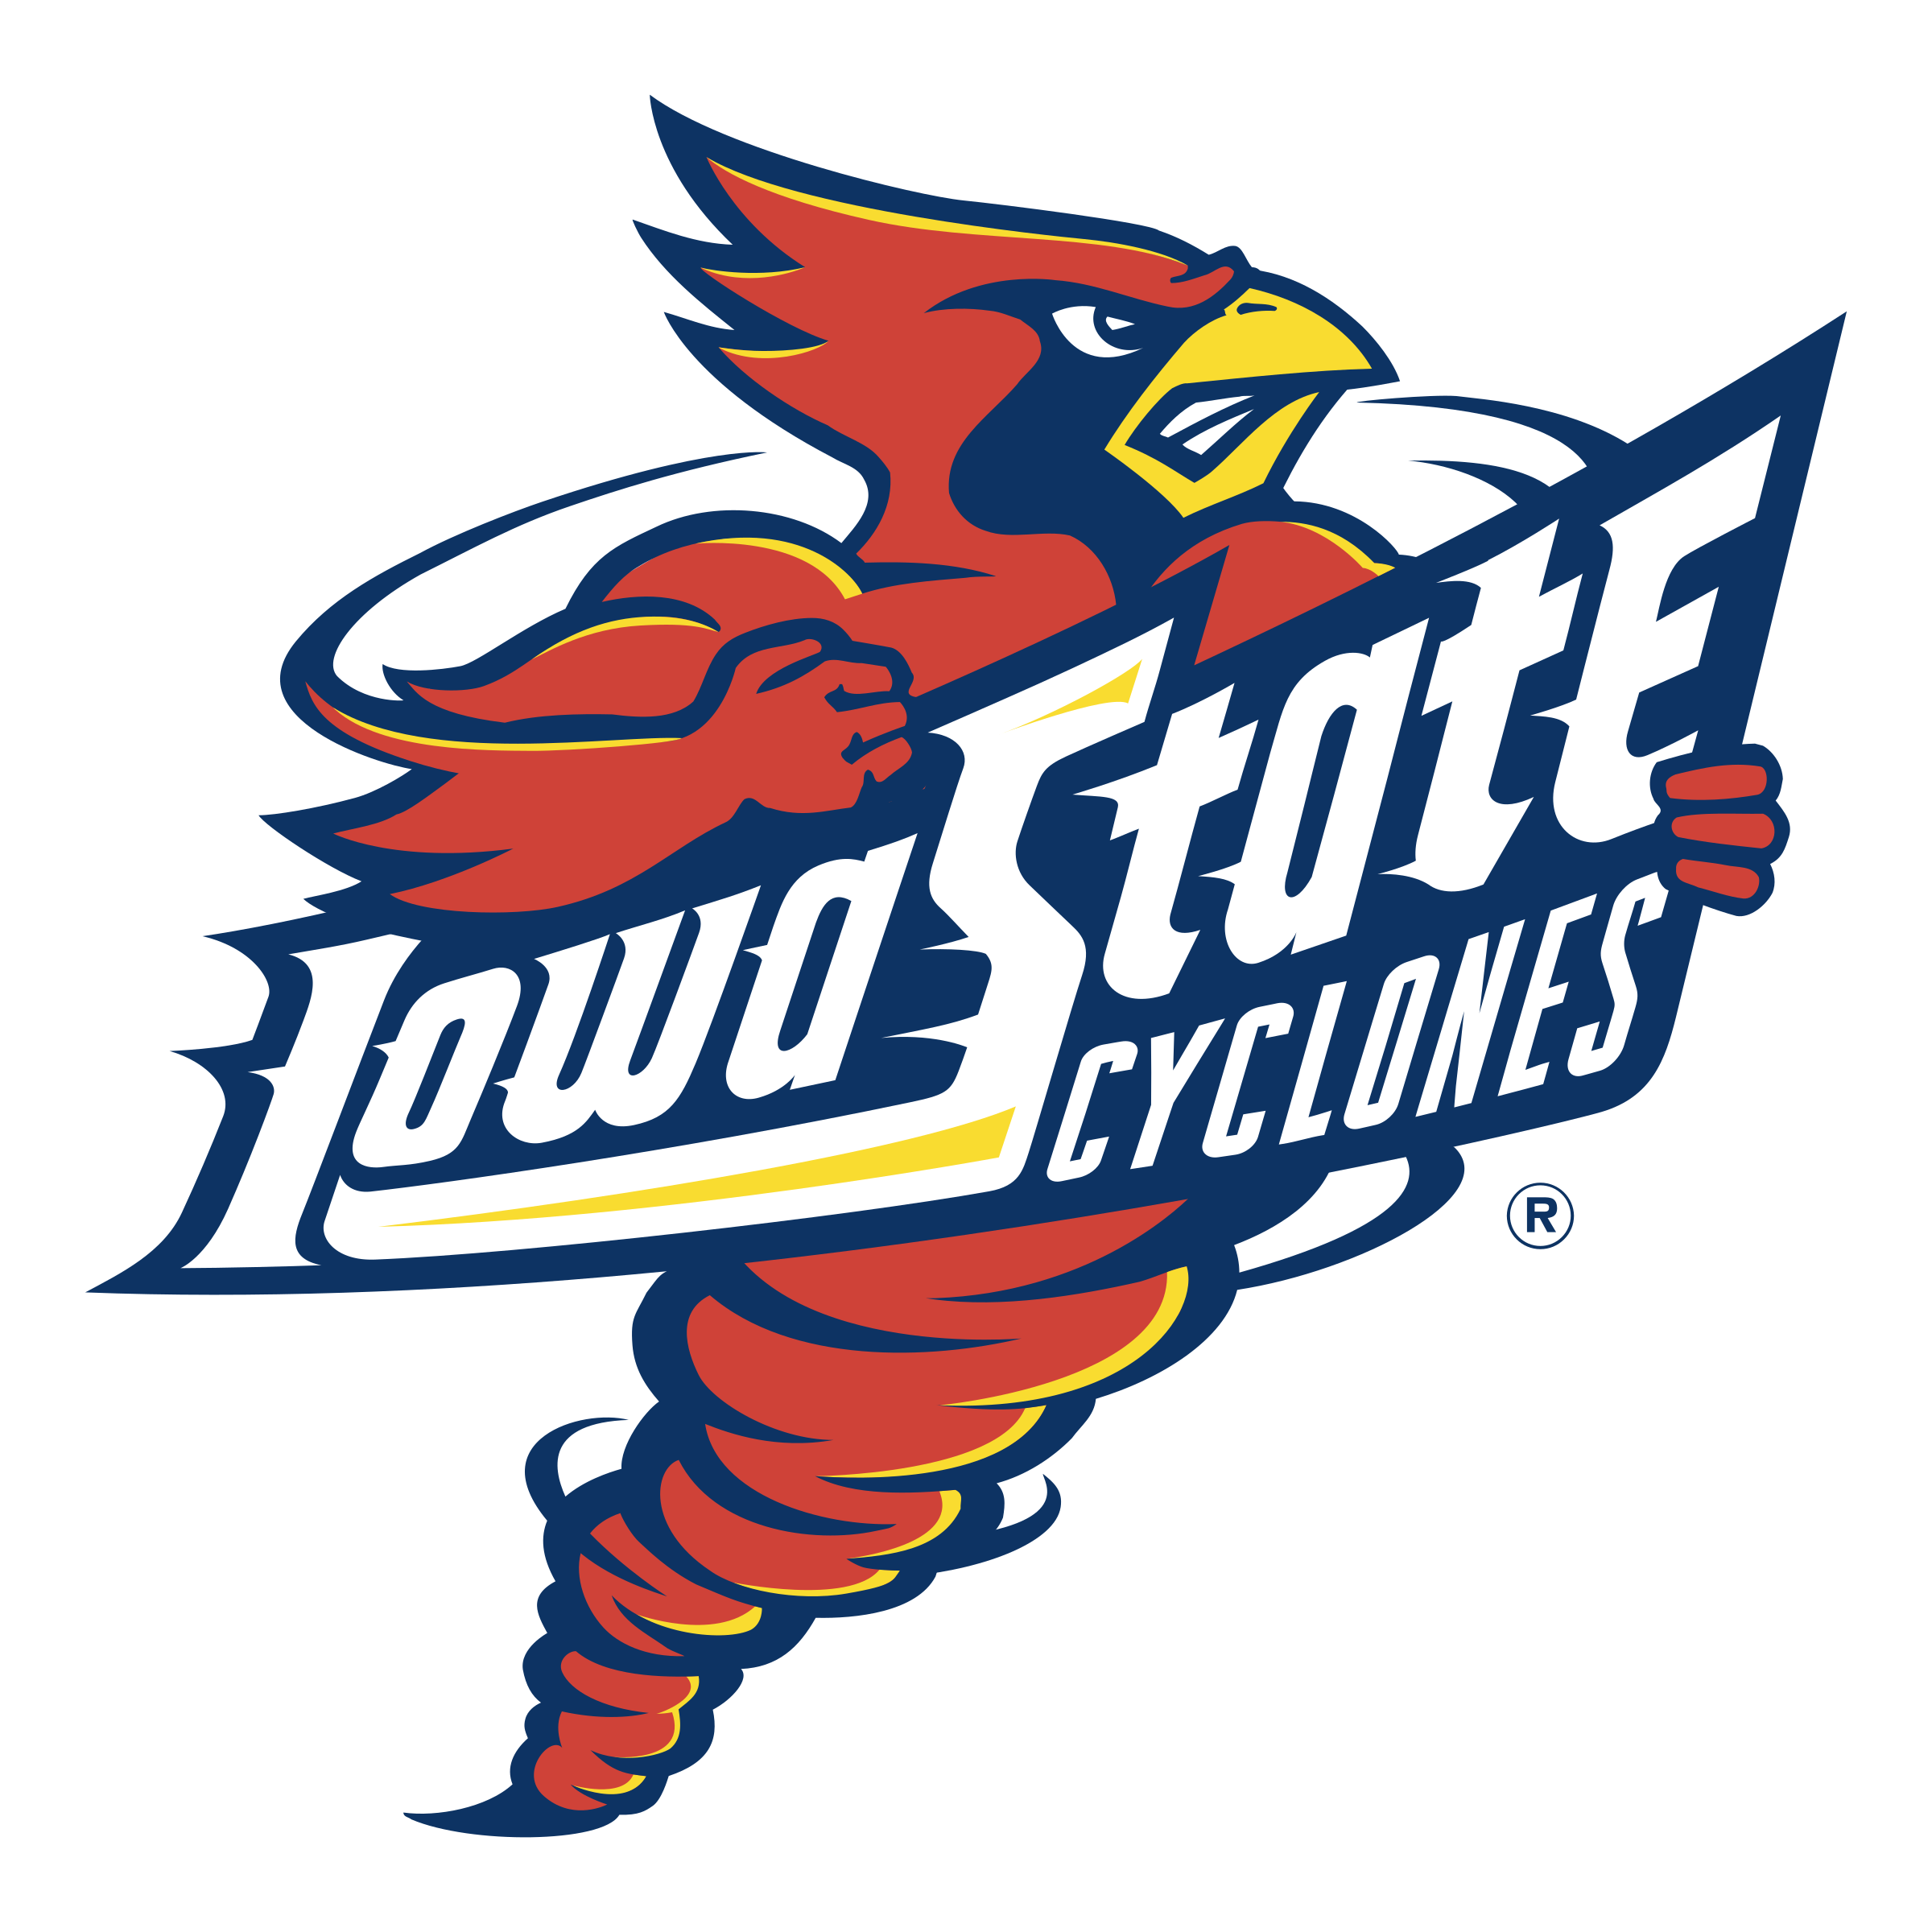 Iowa State Cyclones Logo PNG Transparent & SVG Vector.